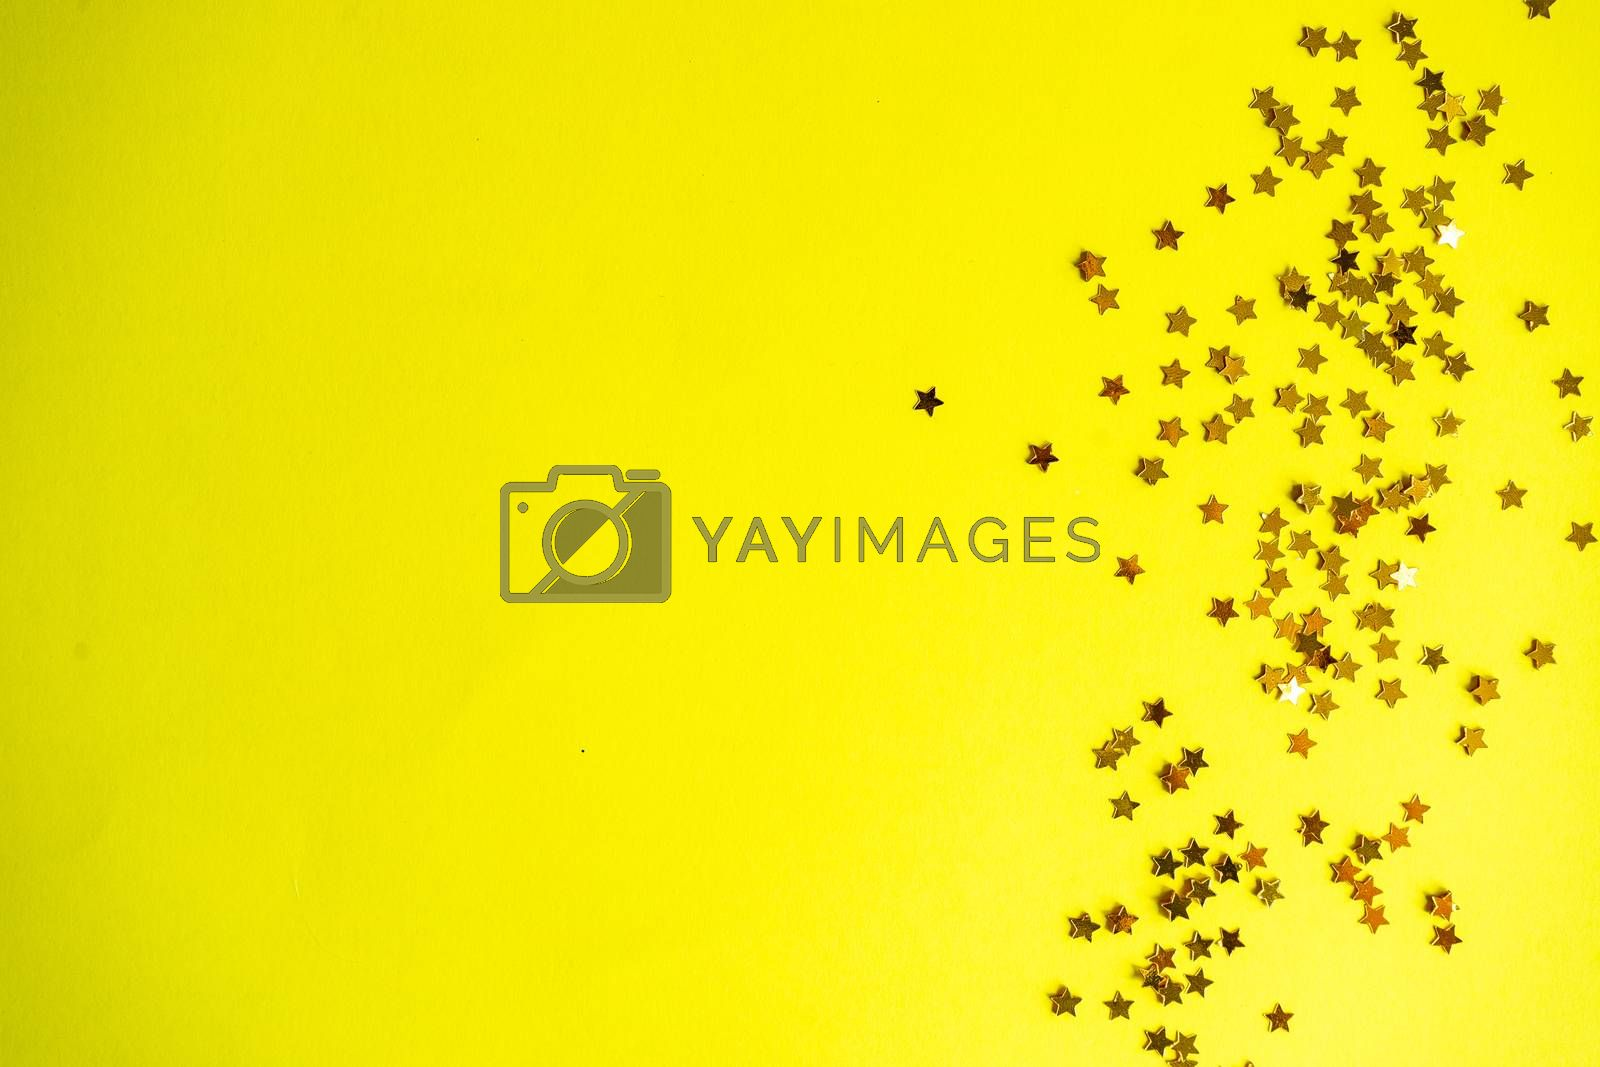 Festive Christmas card concept with star shaped decor on yellow background with copy space